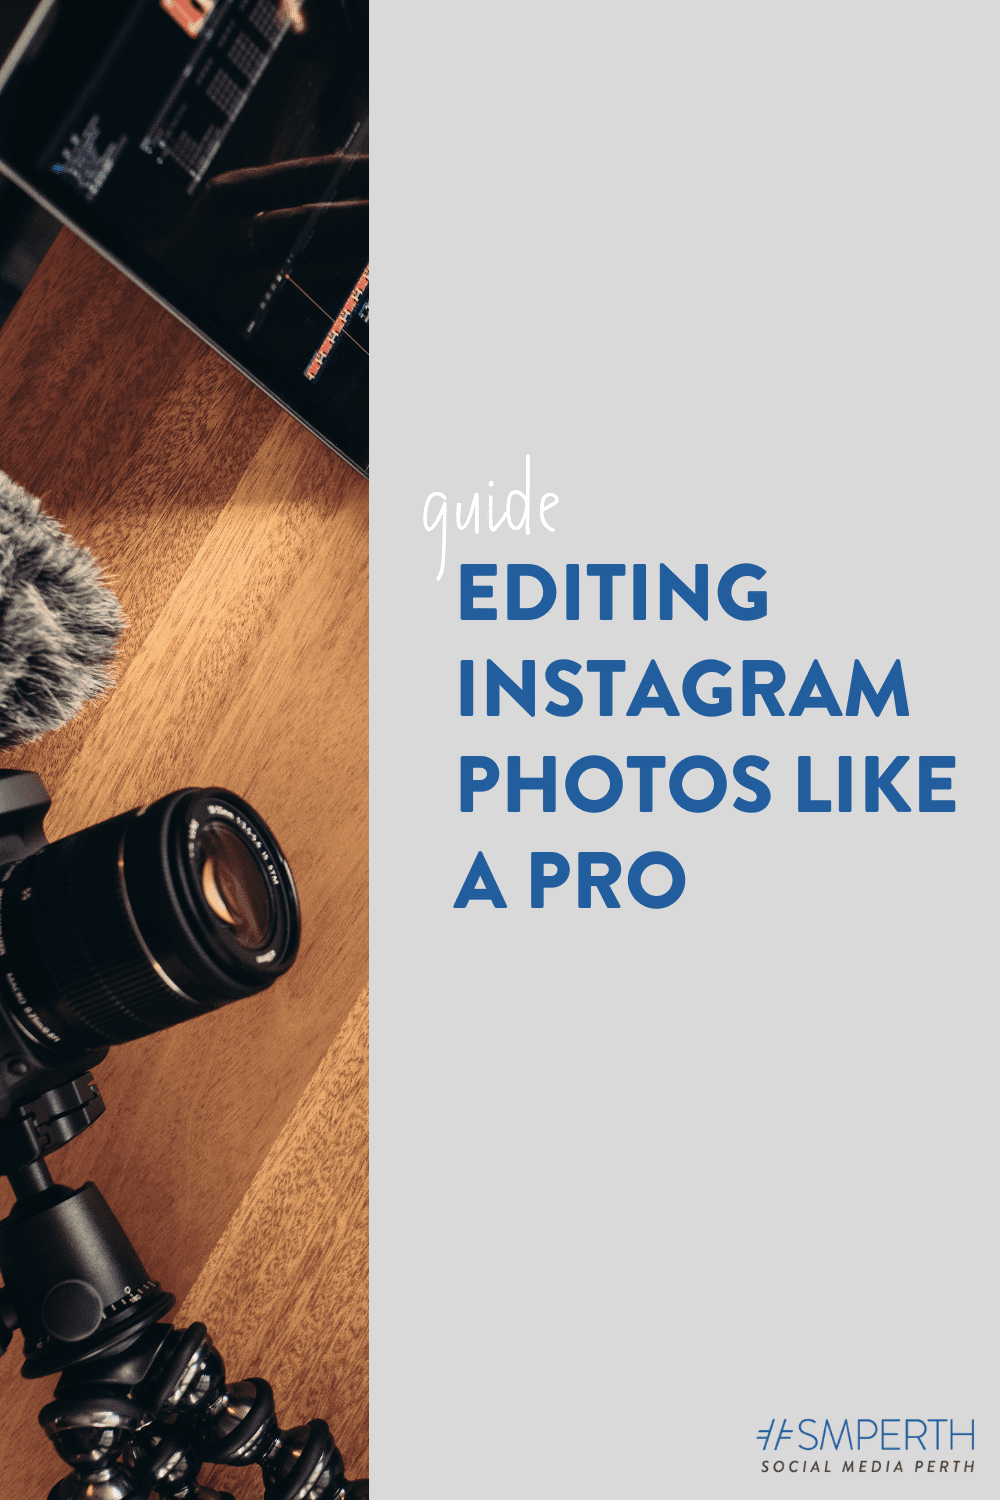 Editing Instagram Photos Like a Pro: A Step-by-Step Guide